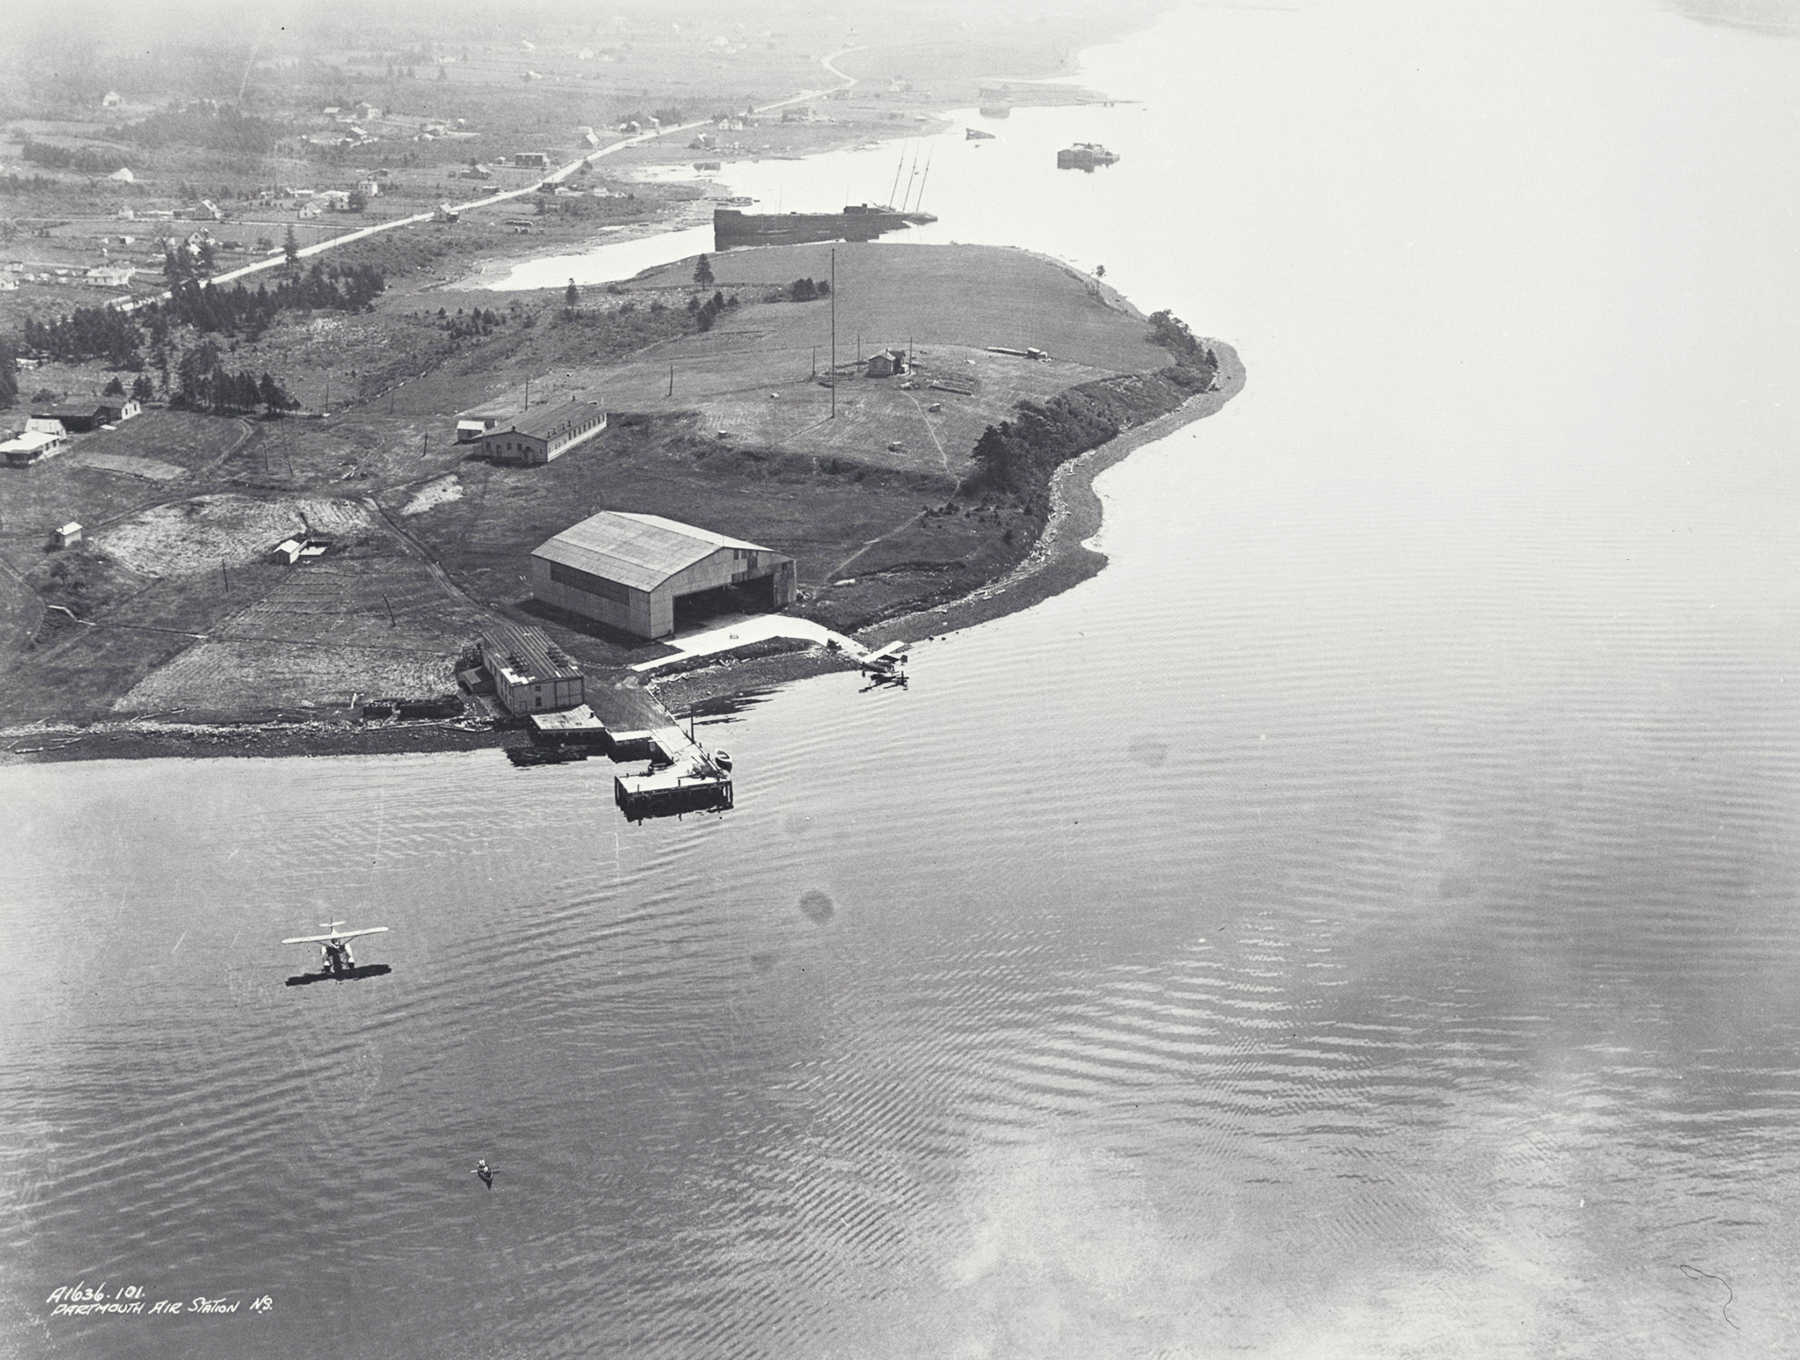 An aerial view of the shoreline of Baker Point/U.S. Naval Air Station Halifax, Nova Scotia. PHOTO: DND Archives, CN-3962